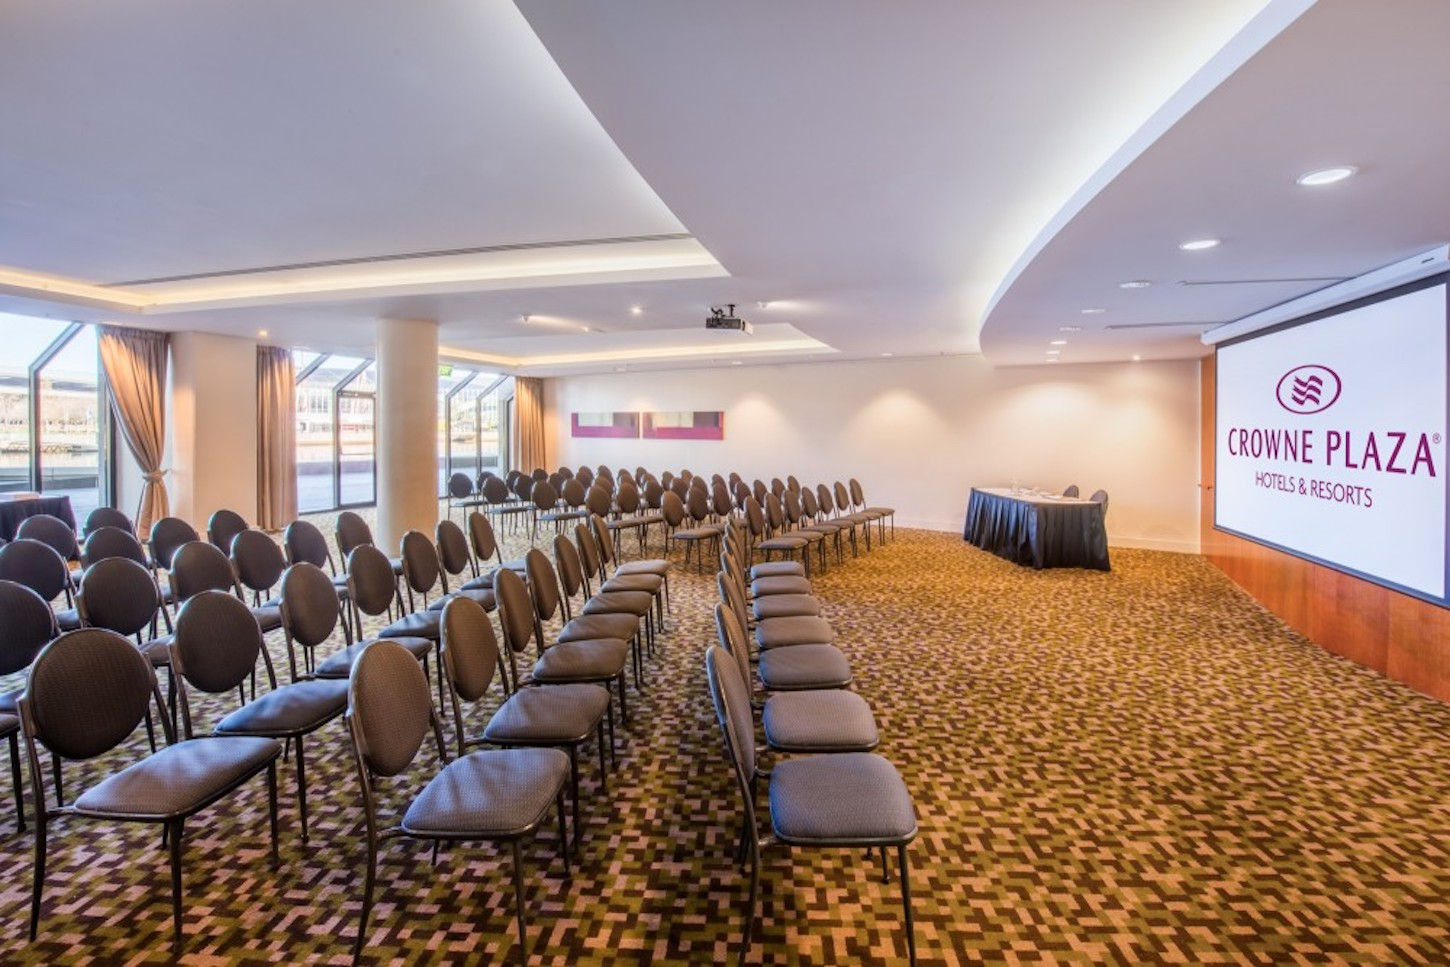 Crowne Plaza meeting rooms